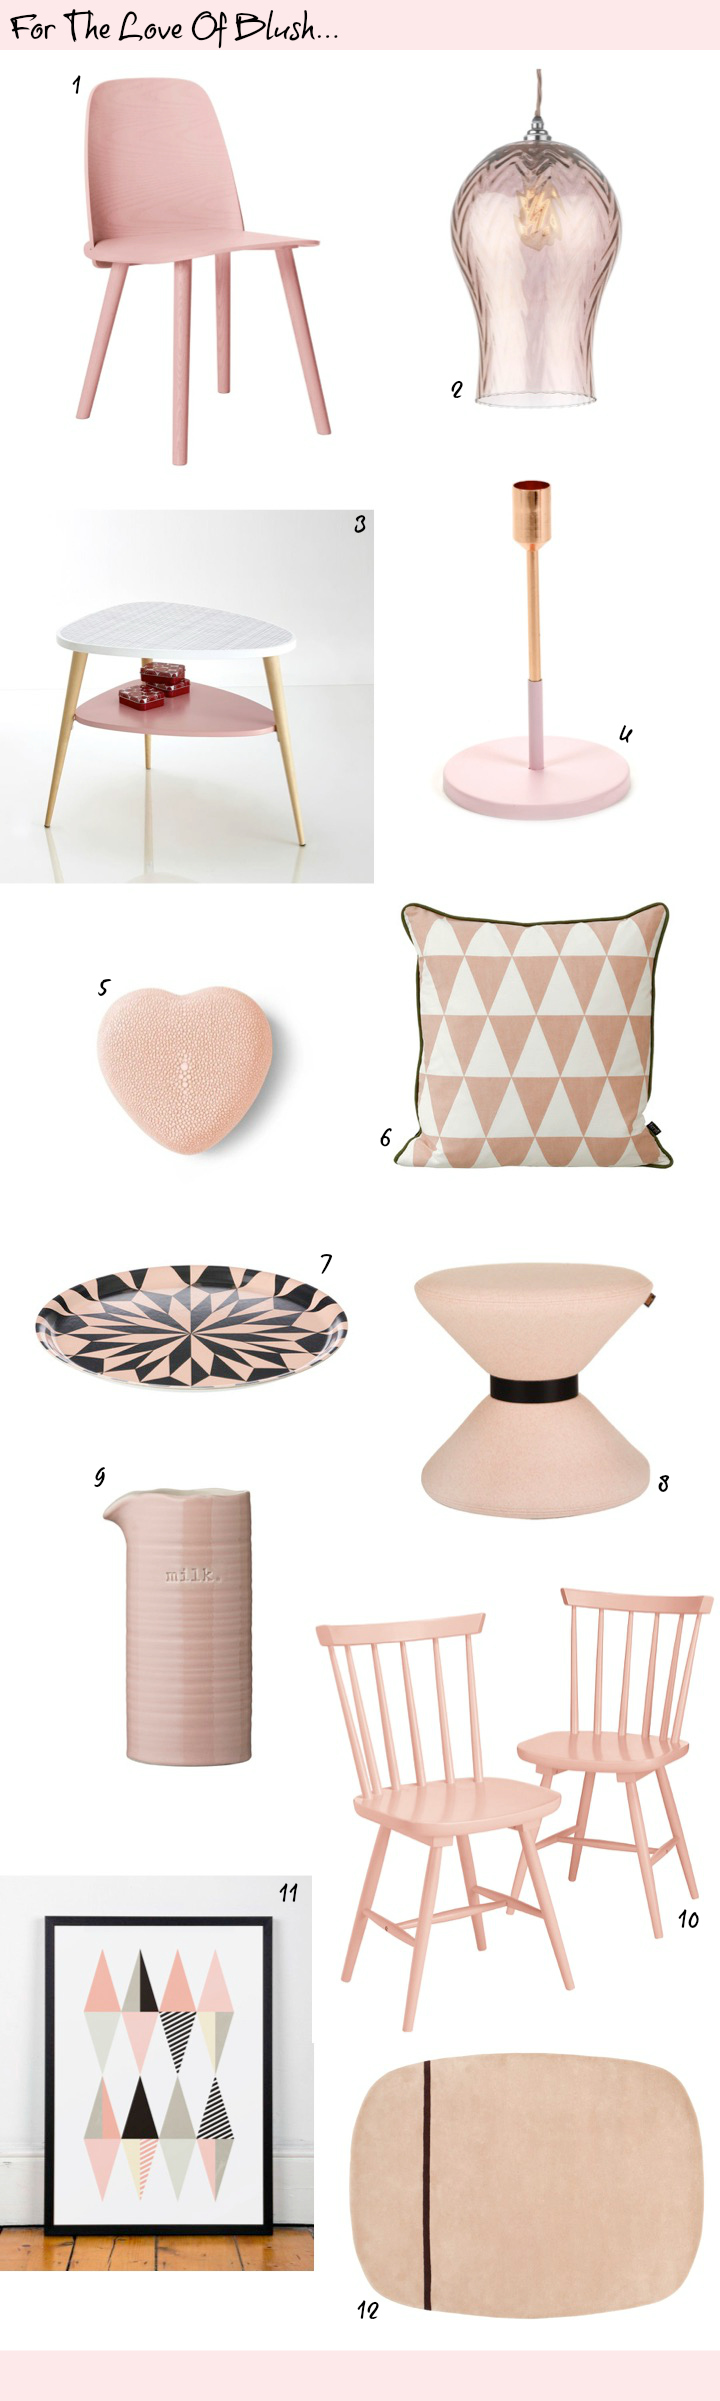 Pantone colour of the year Rose Quartz - Blush Pink Interiors  Accessories